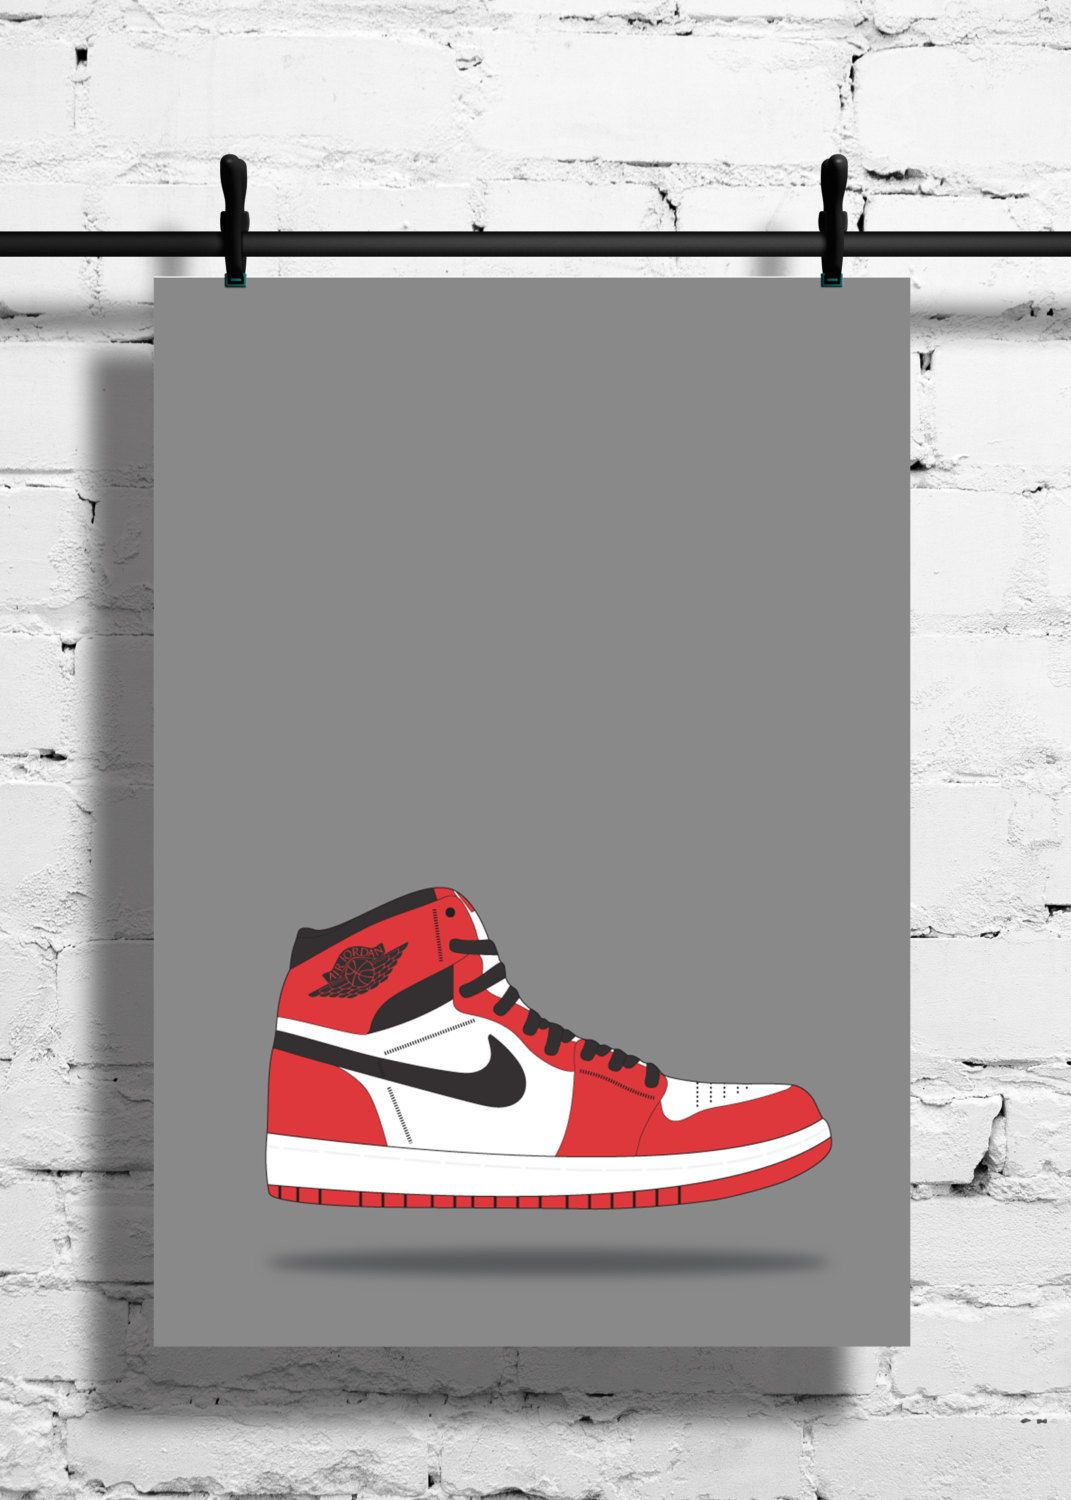 Nike Air Jordan 1 Chicago Poster – 1985 – Sneaker Poster – A4 - A3 –  Digital – Red – Black - White – Art – Sneaker - Basketball - Chicago